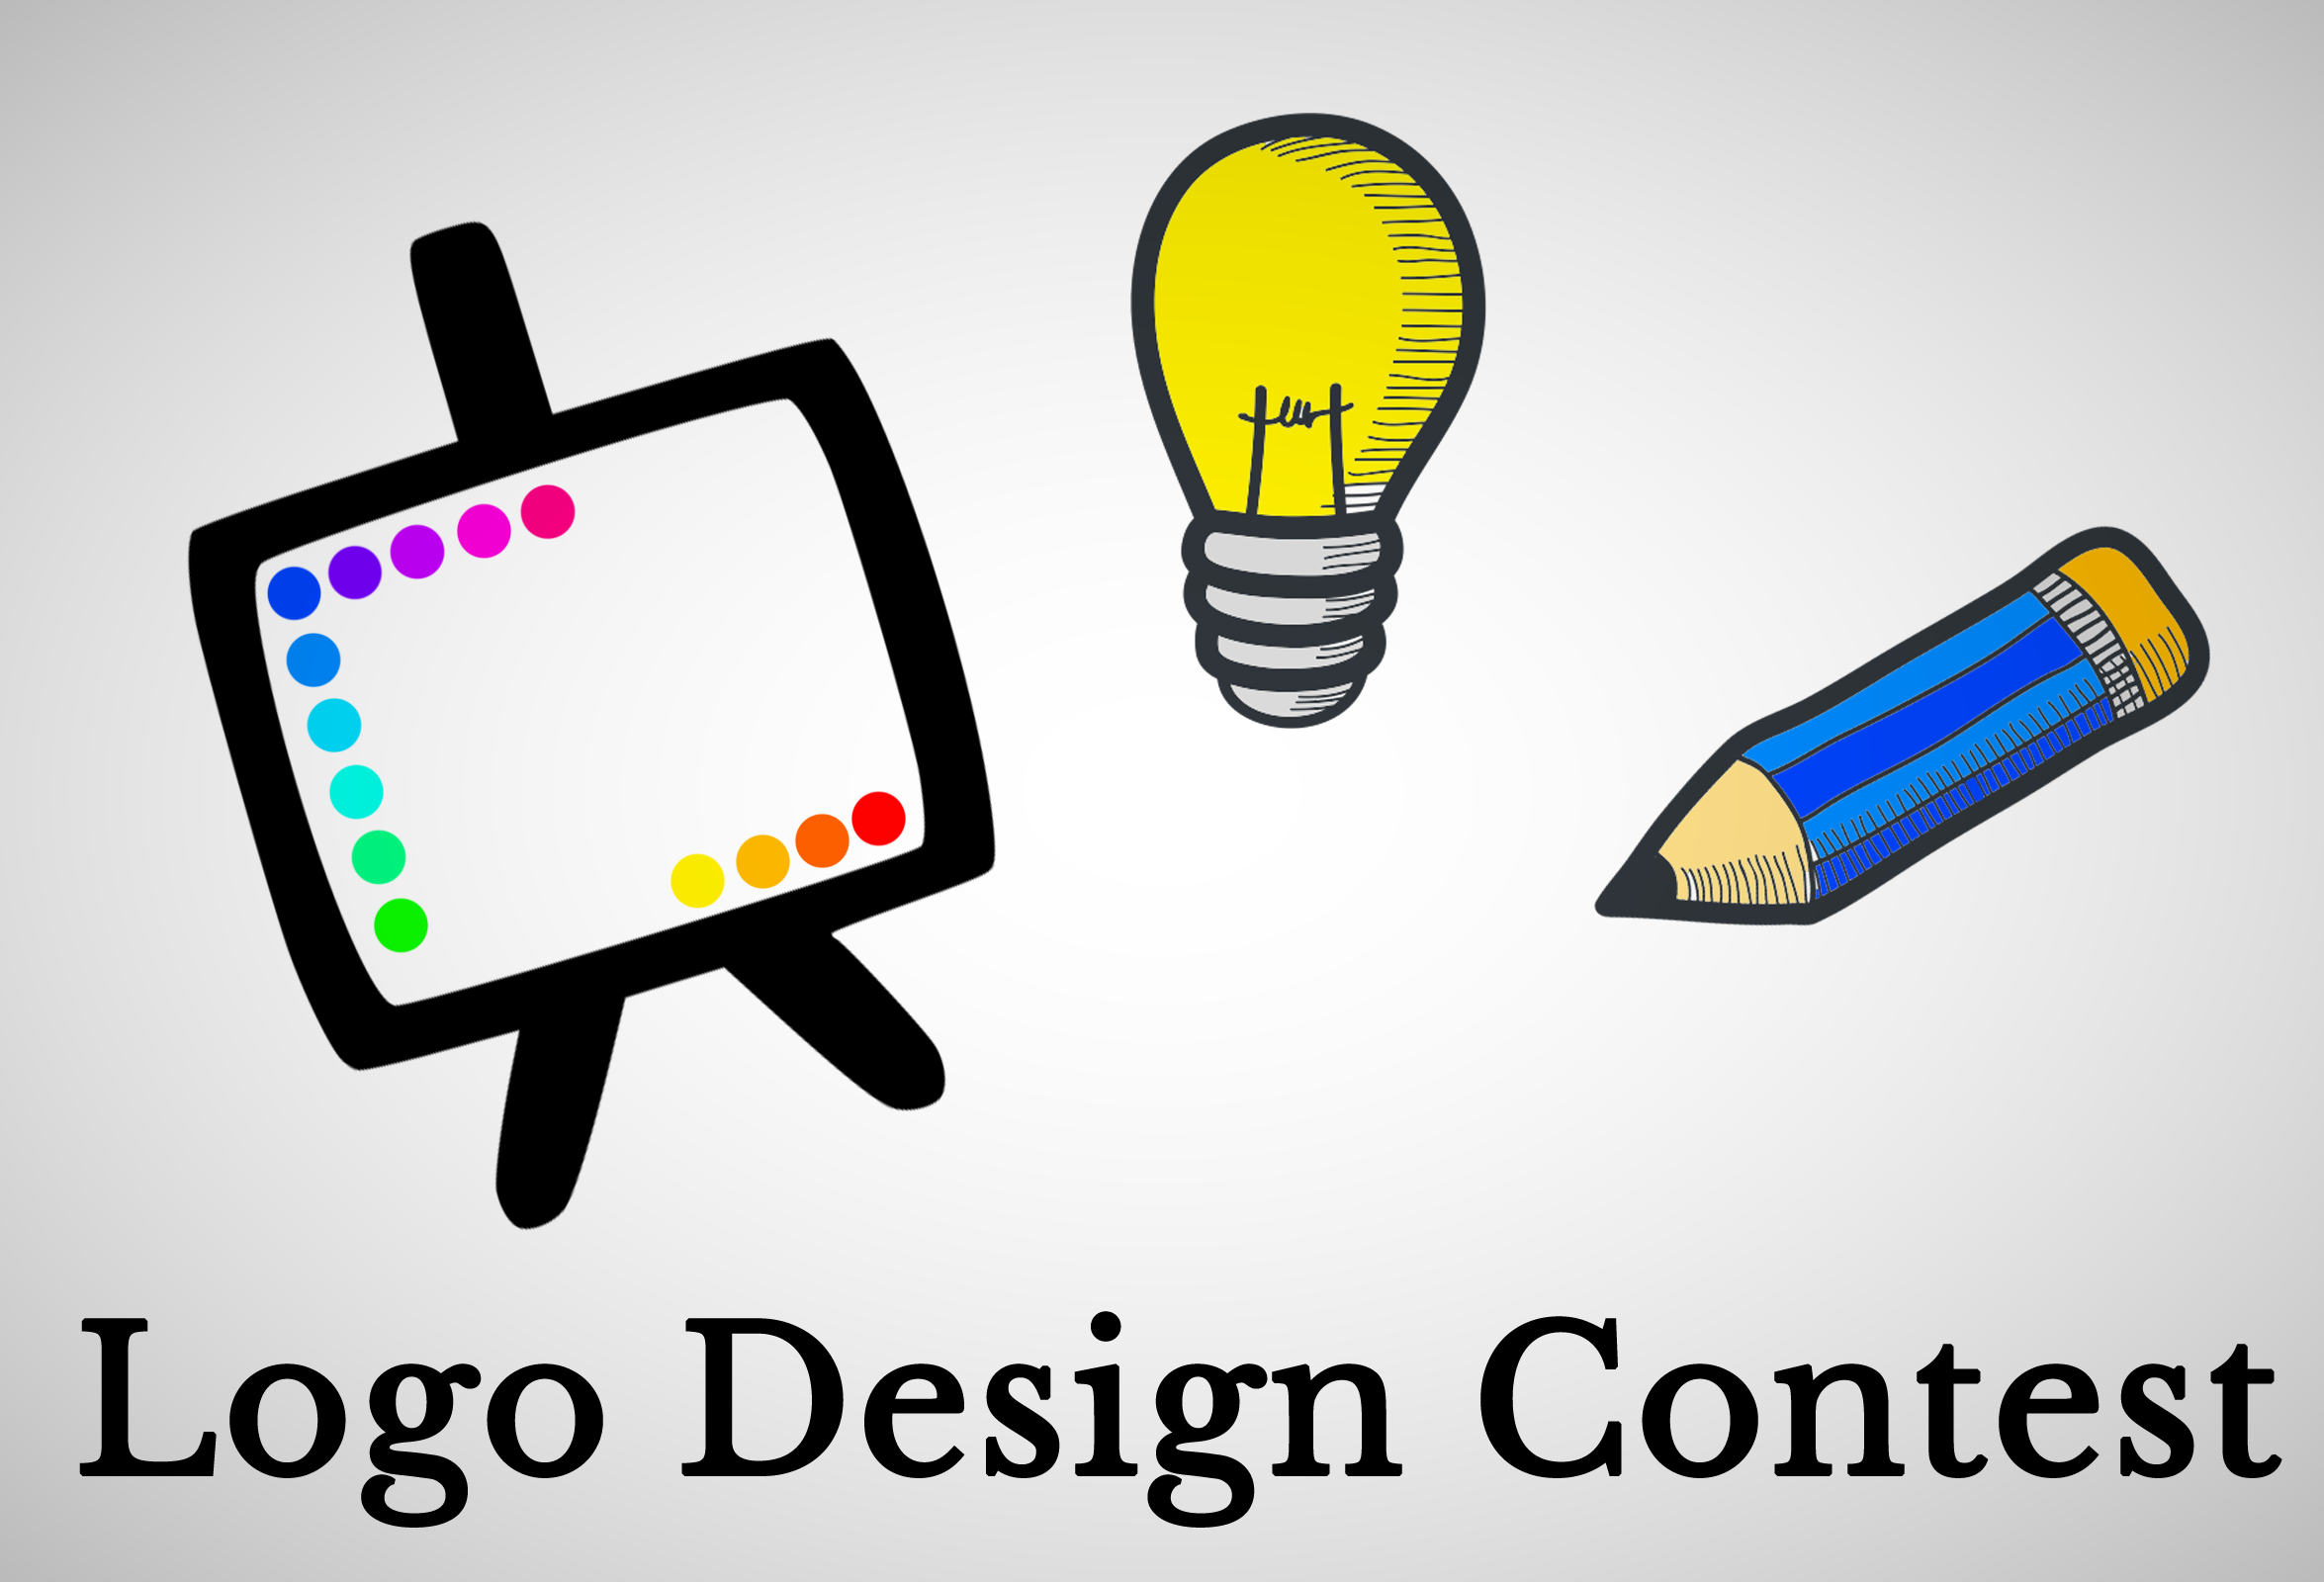 logo design contest illustration